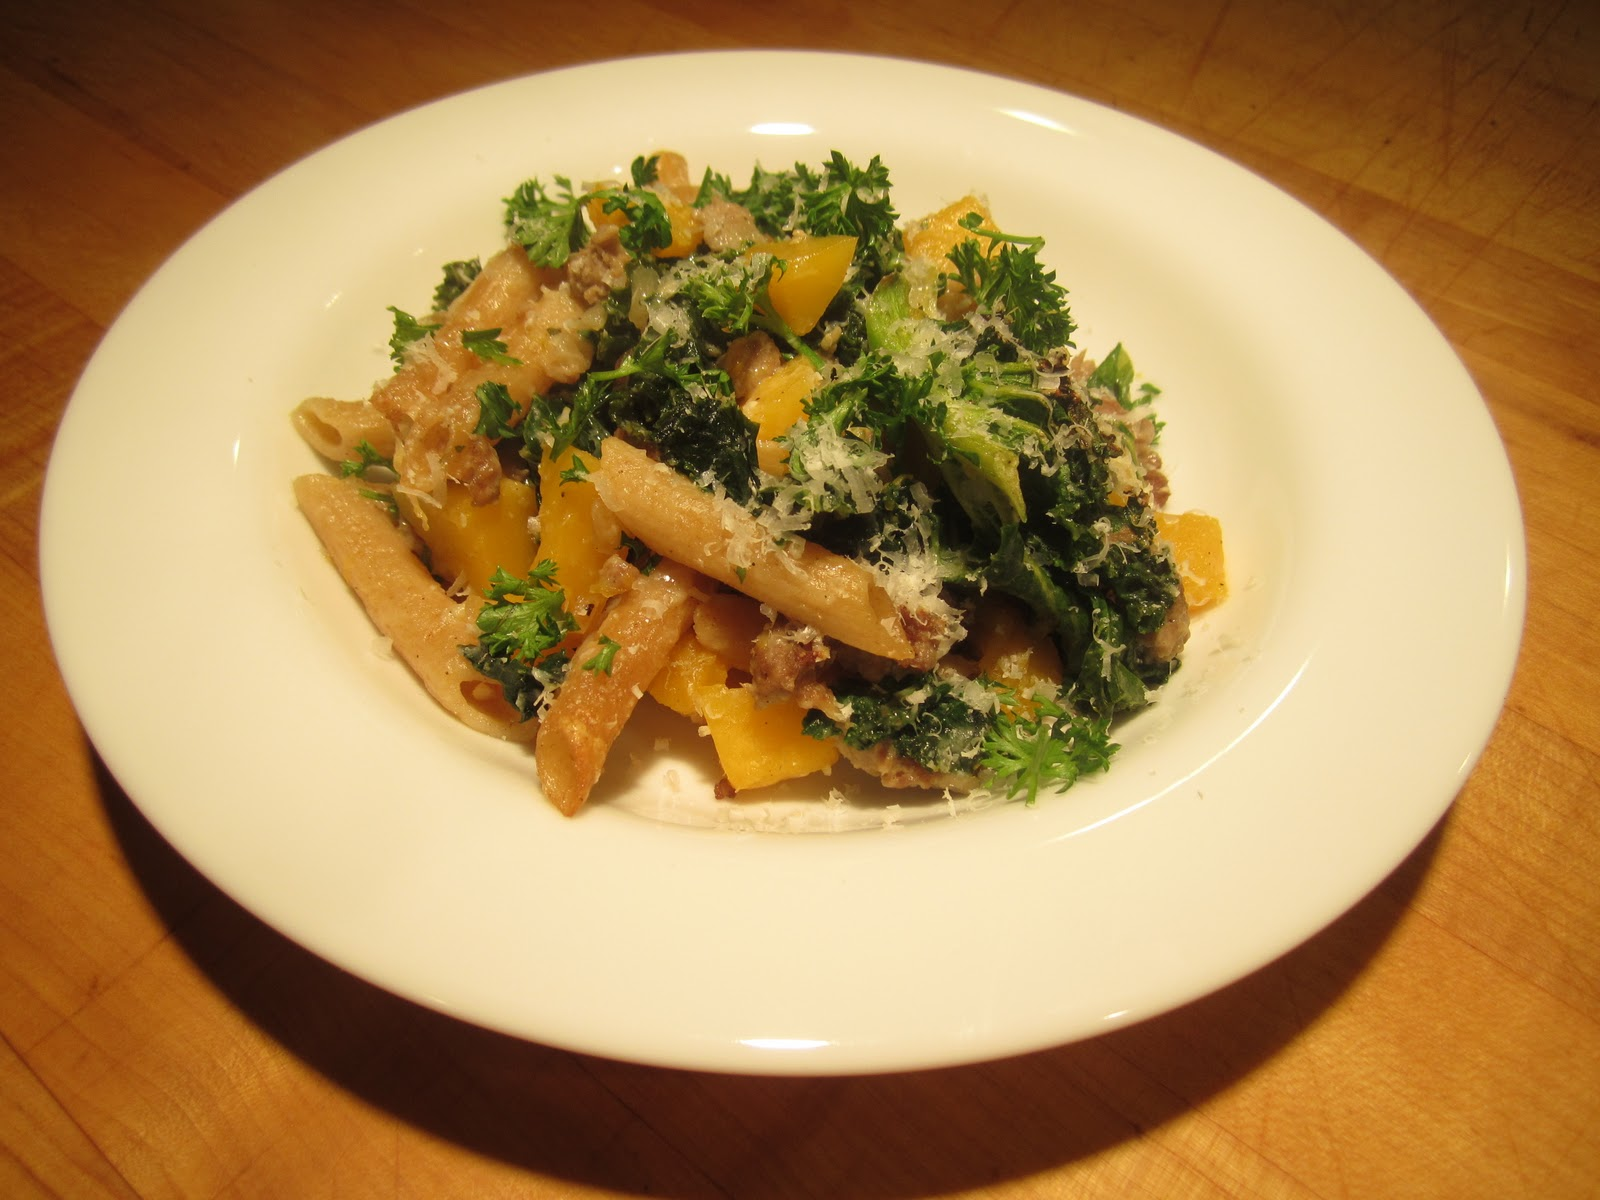 Butternut Squash, Sausage and Kale Baked Pasta Recipe - The Lemon Bowl